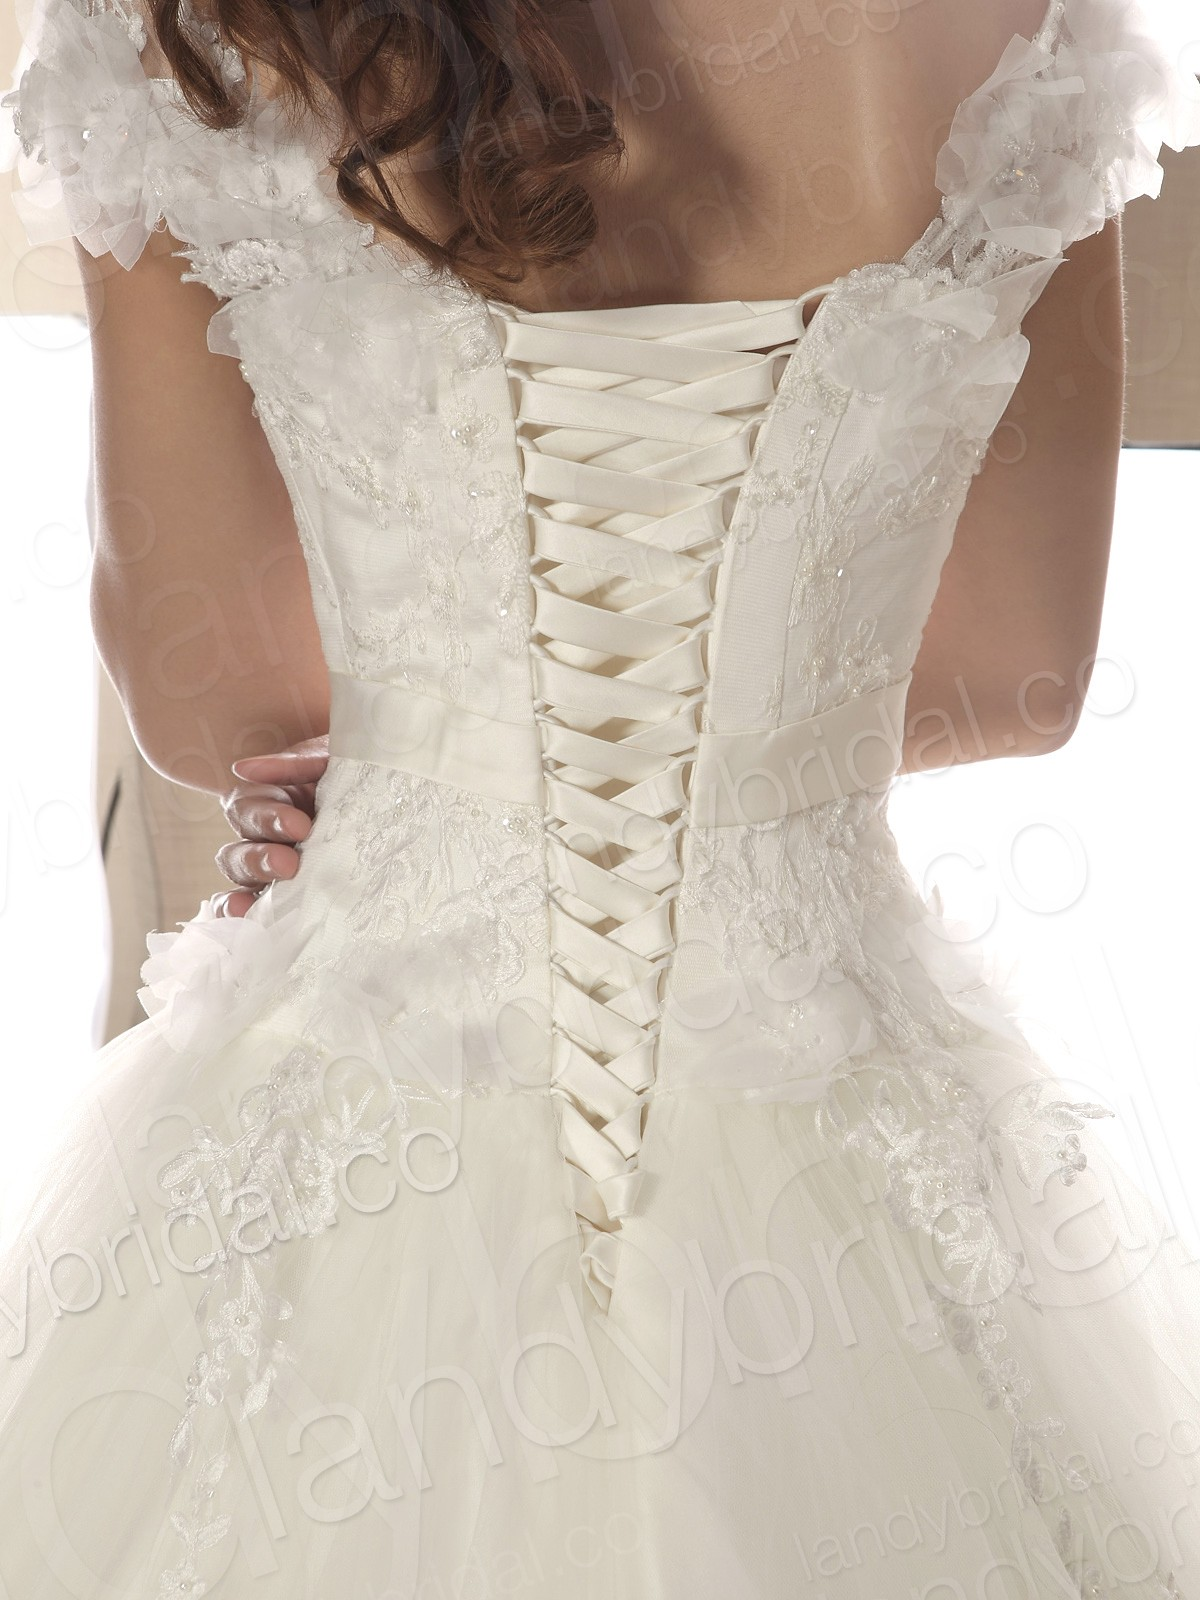 above is a pretty lace up corset white wedding dress with spaghetti